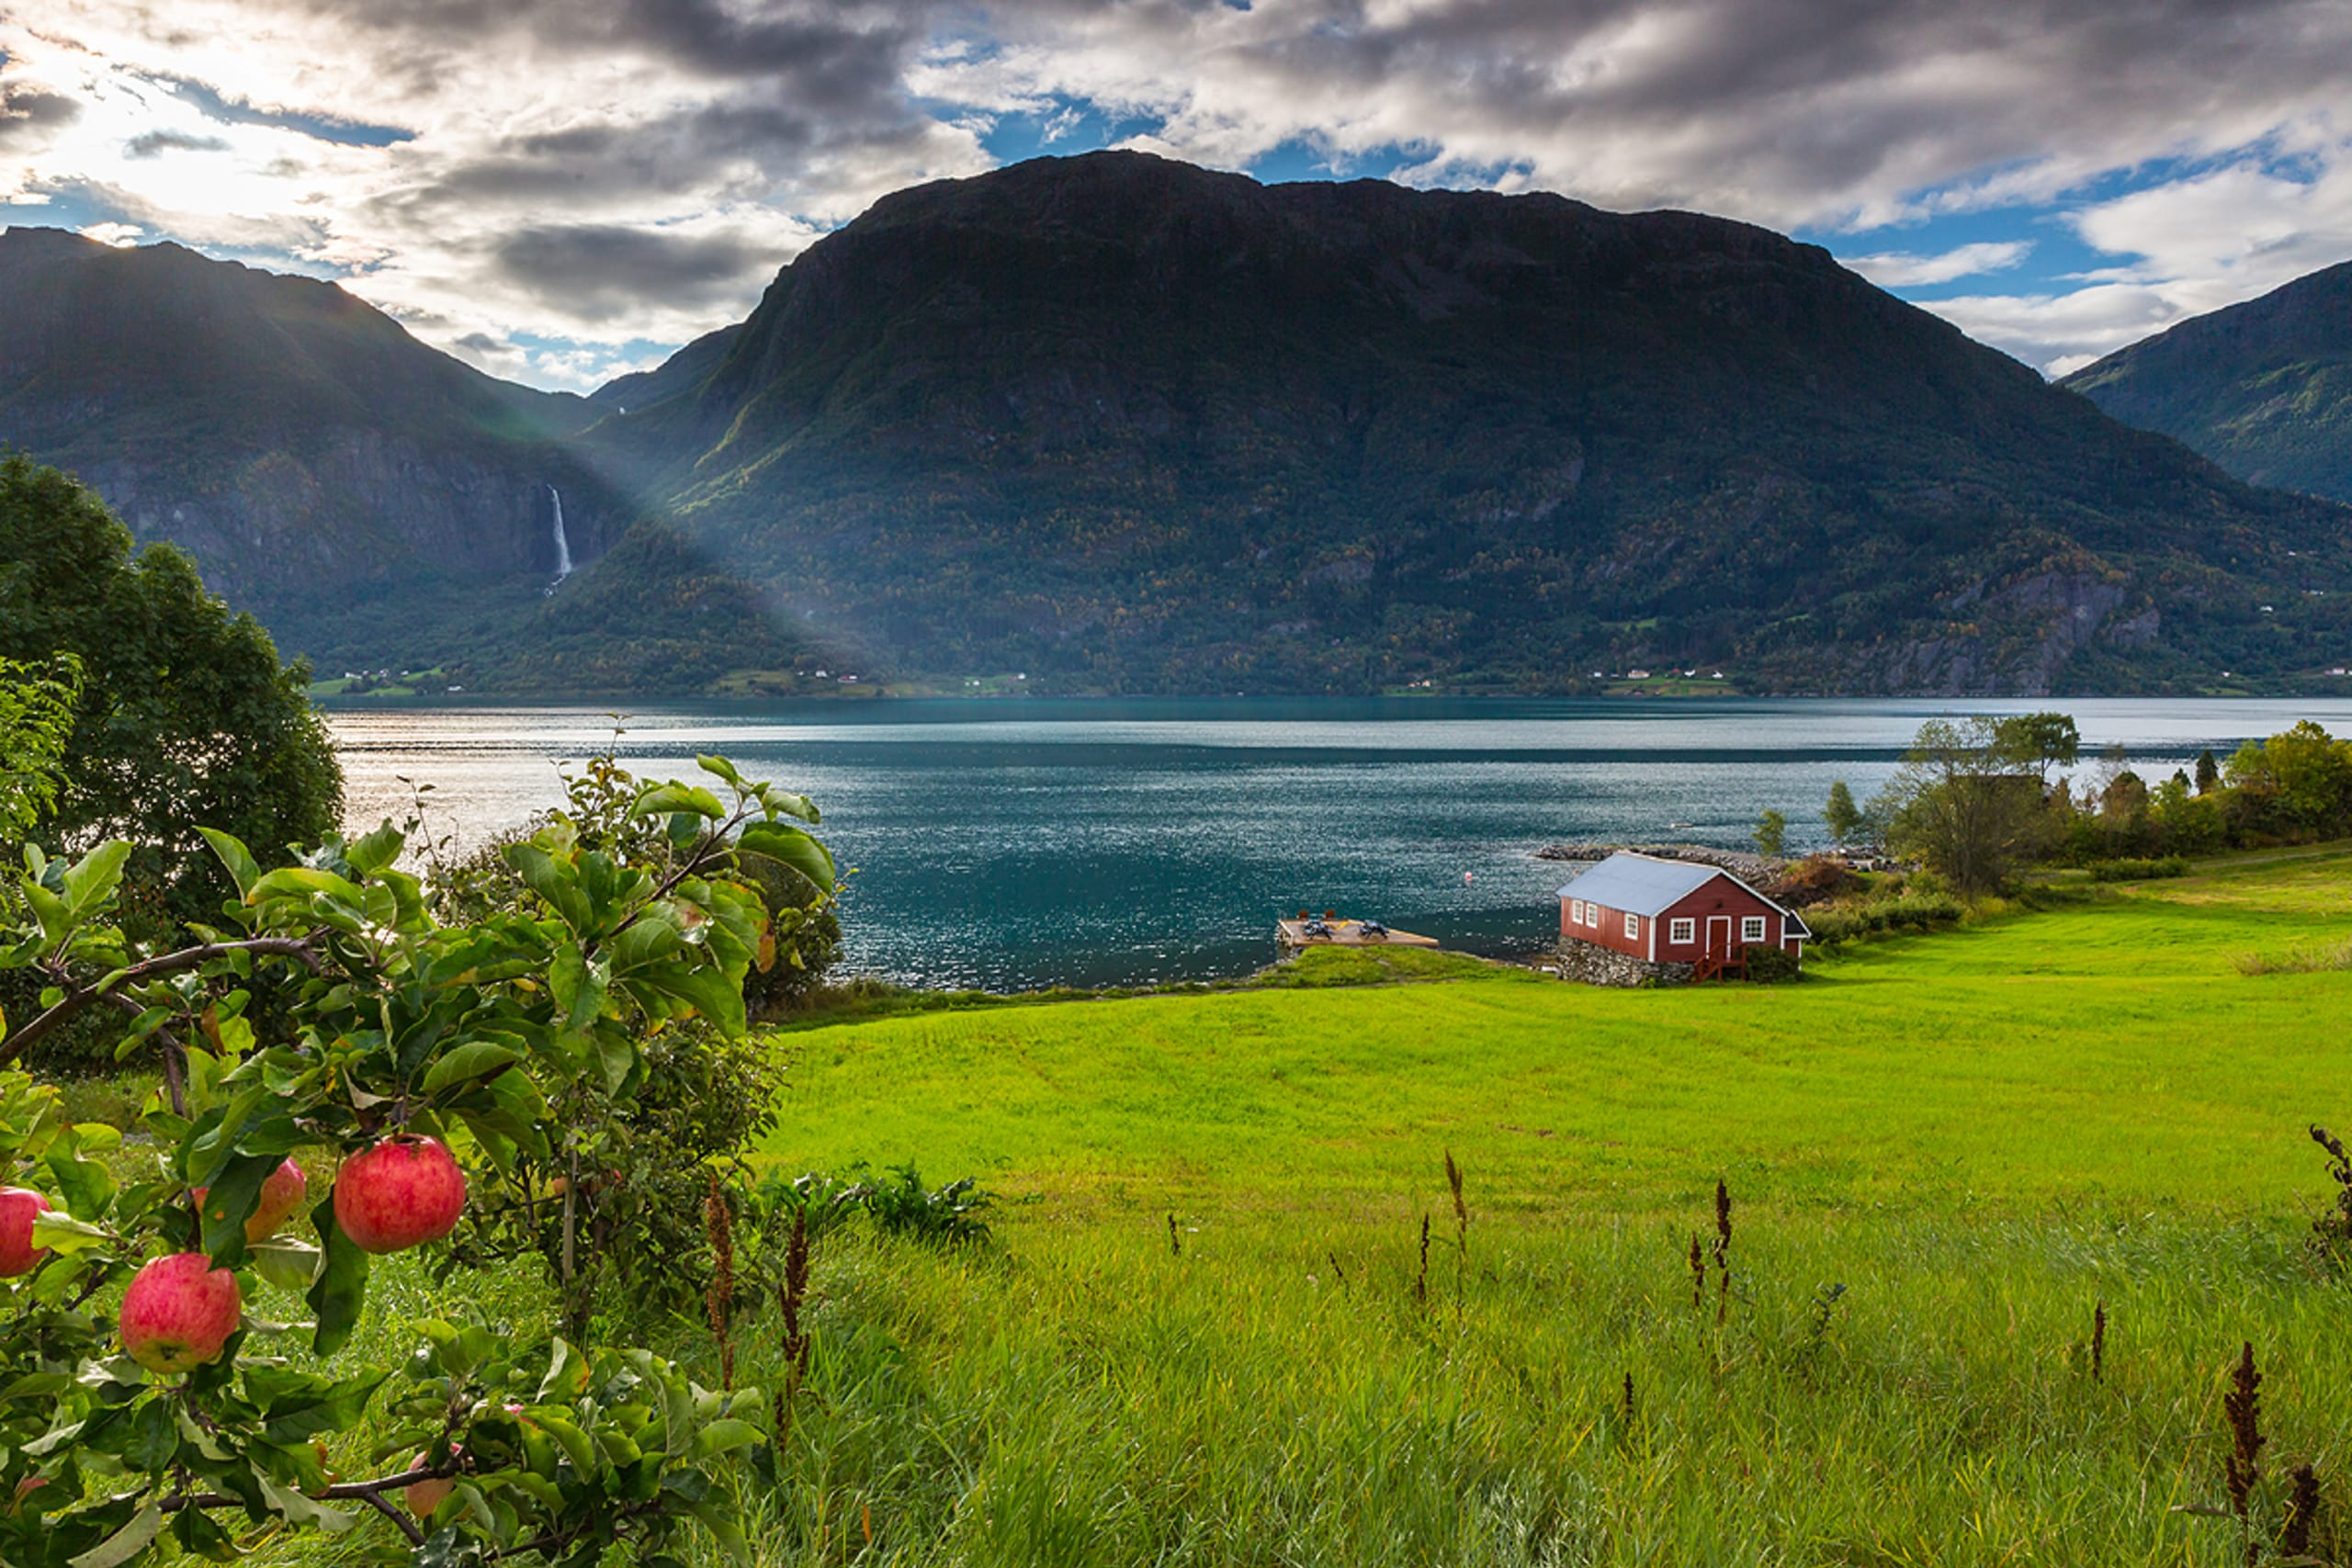 Rural surroundings along the Sognefjord